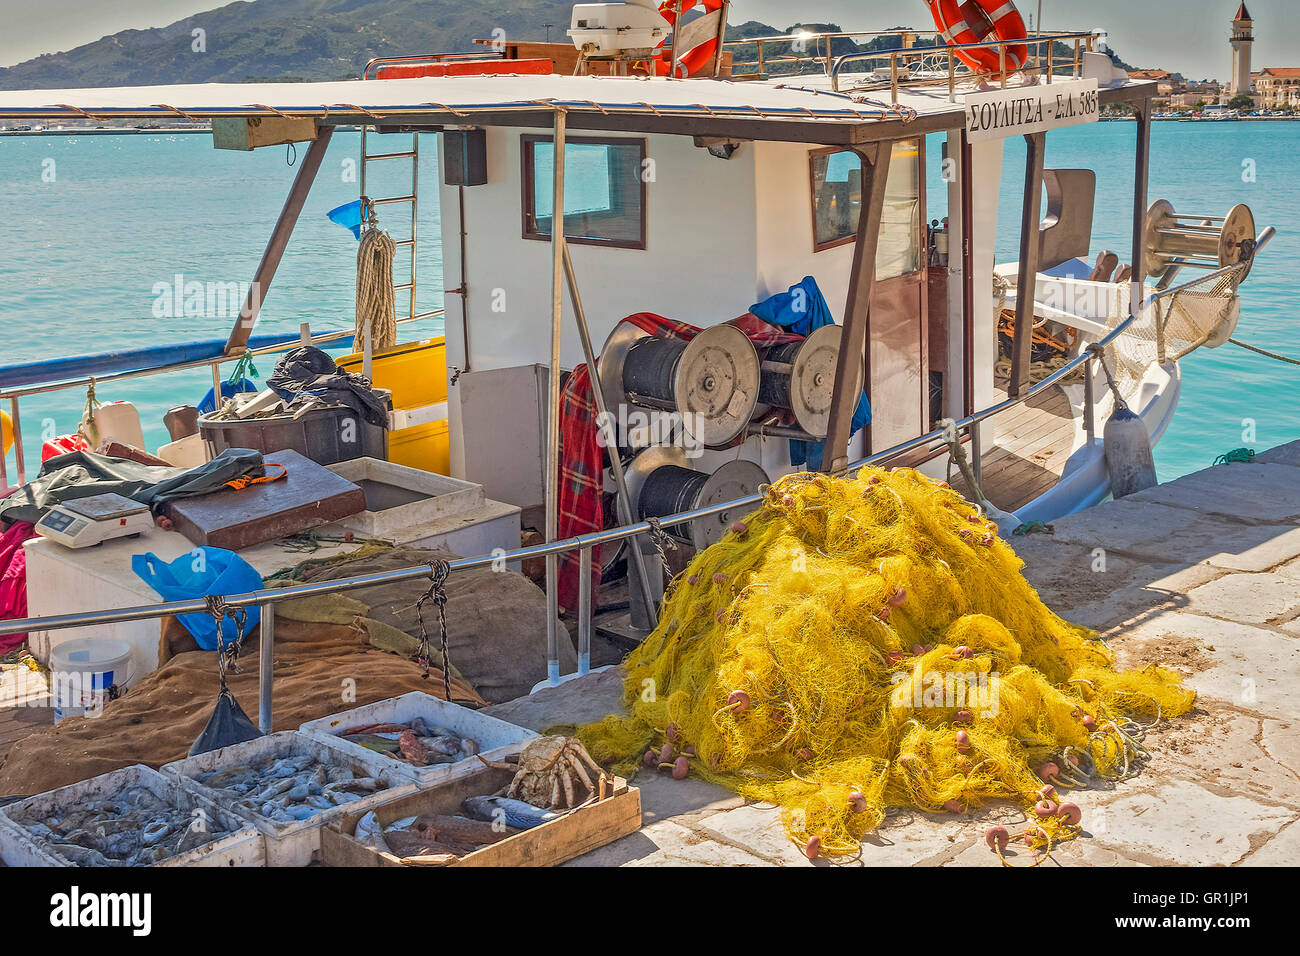 Fishing Boat In The harbour, Zakinthos, Greece Stock Photo